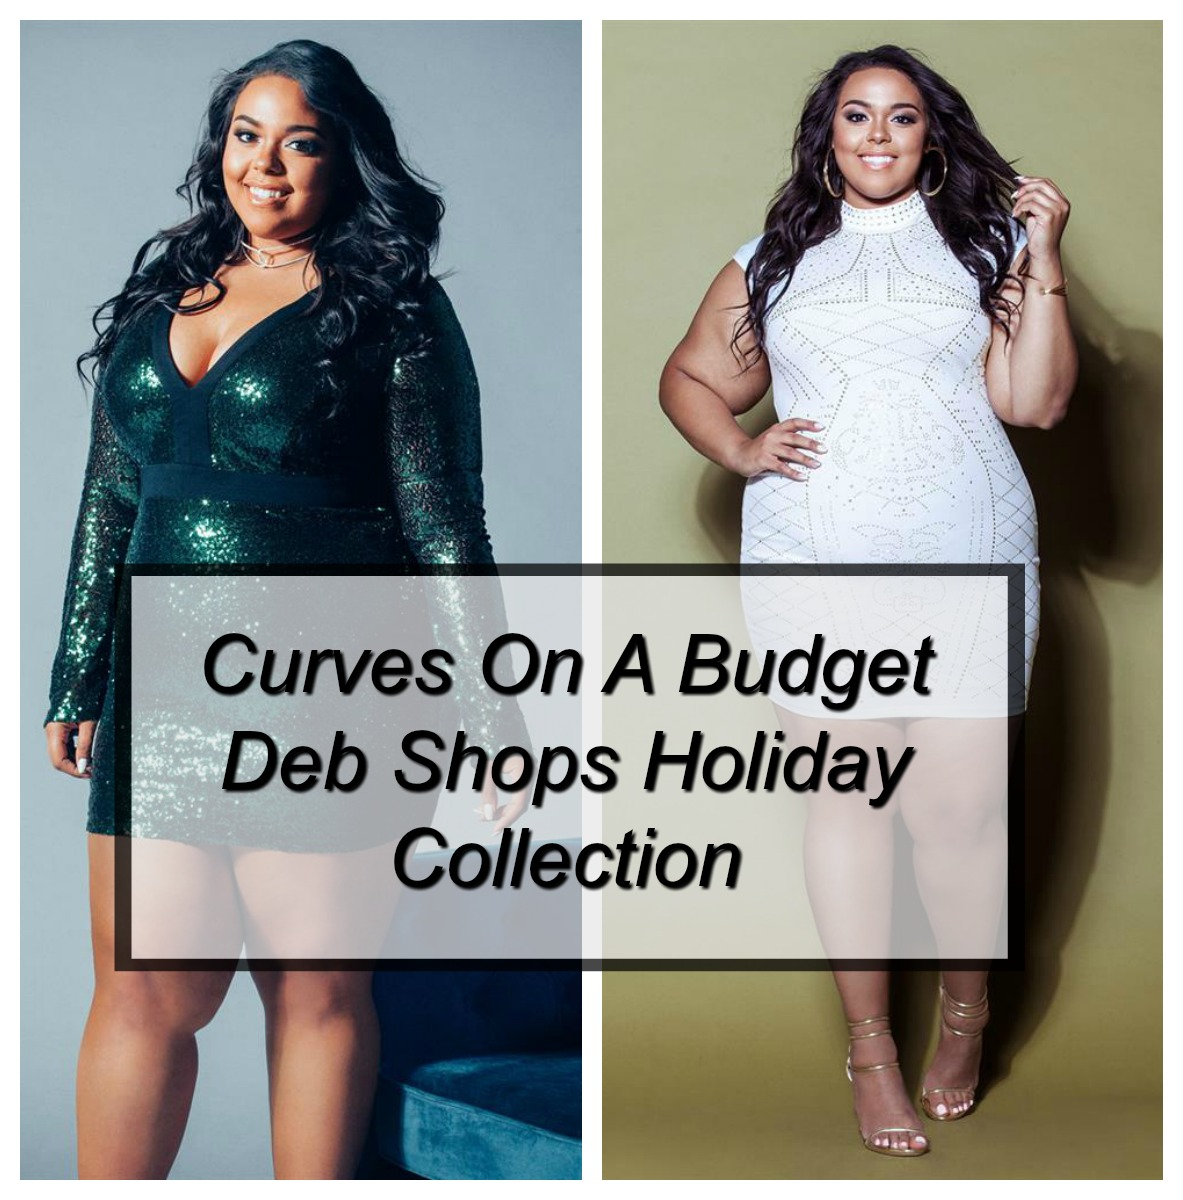 curves-on-a-budget-holiday-and-deb-shops-collection